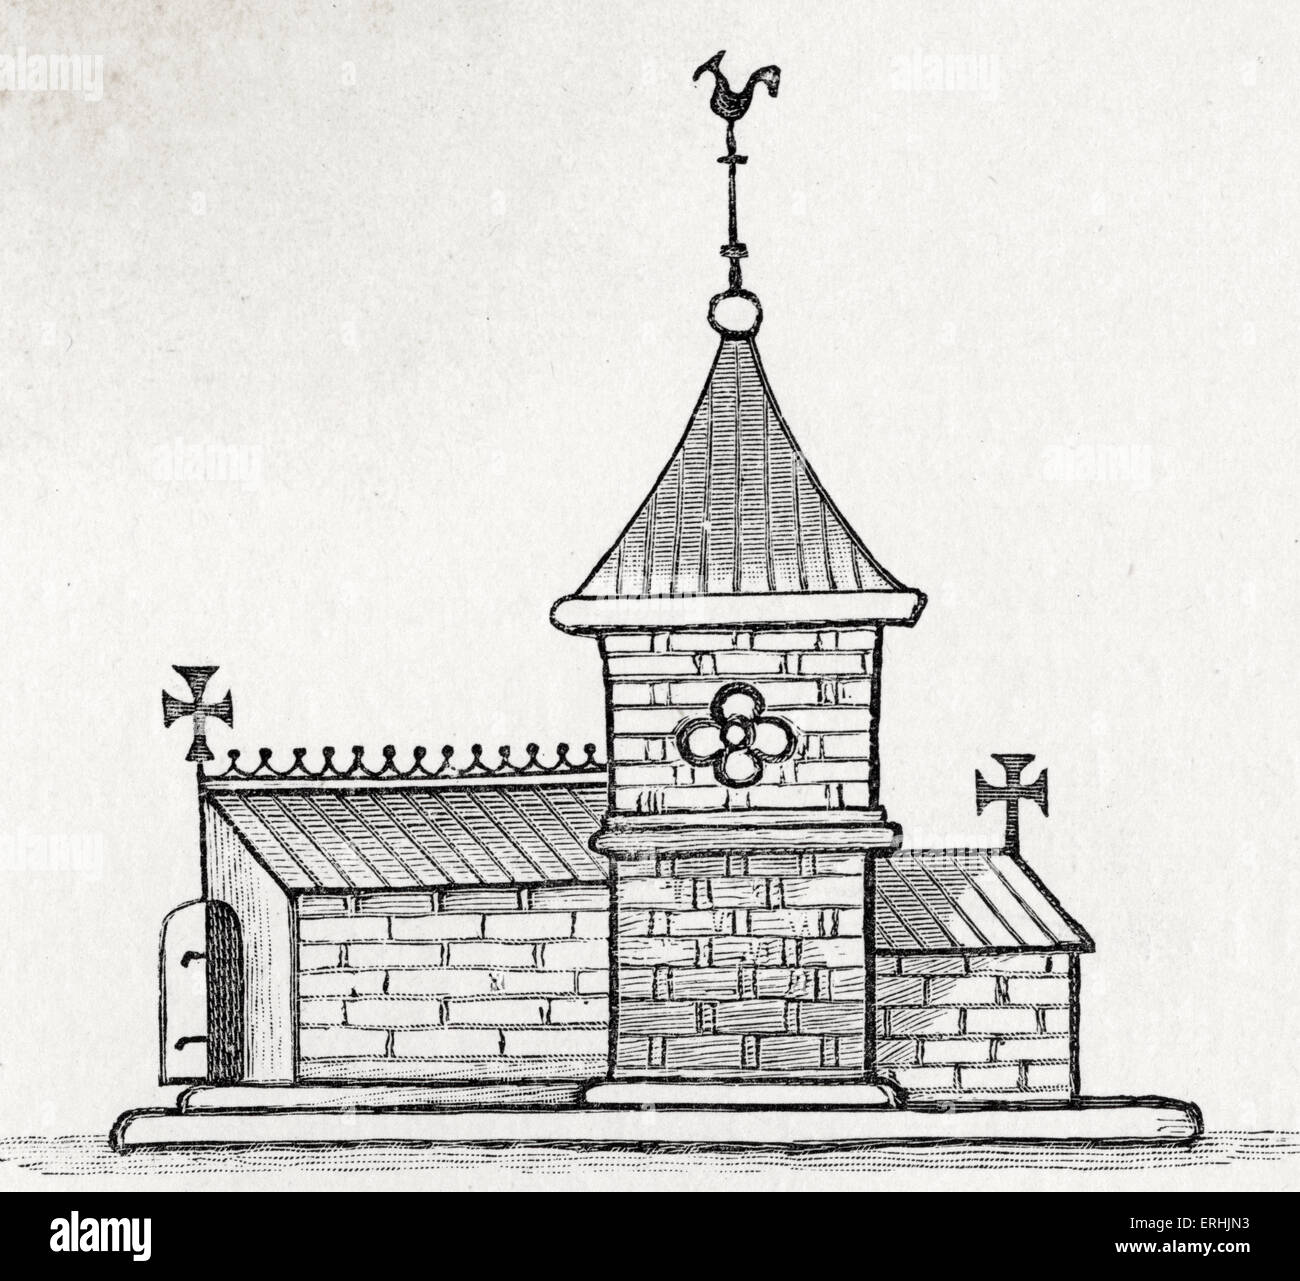 Church in London for converted Jews. Built by Henry III. Drawn by Matthew Paris. - Stock Image